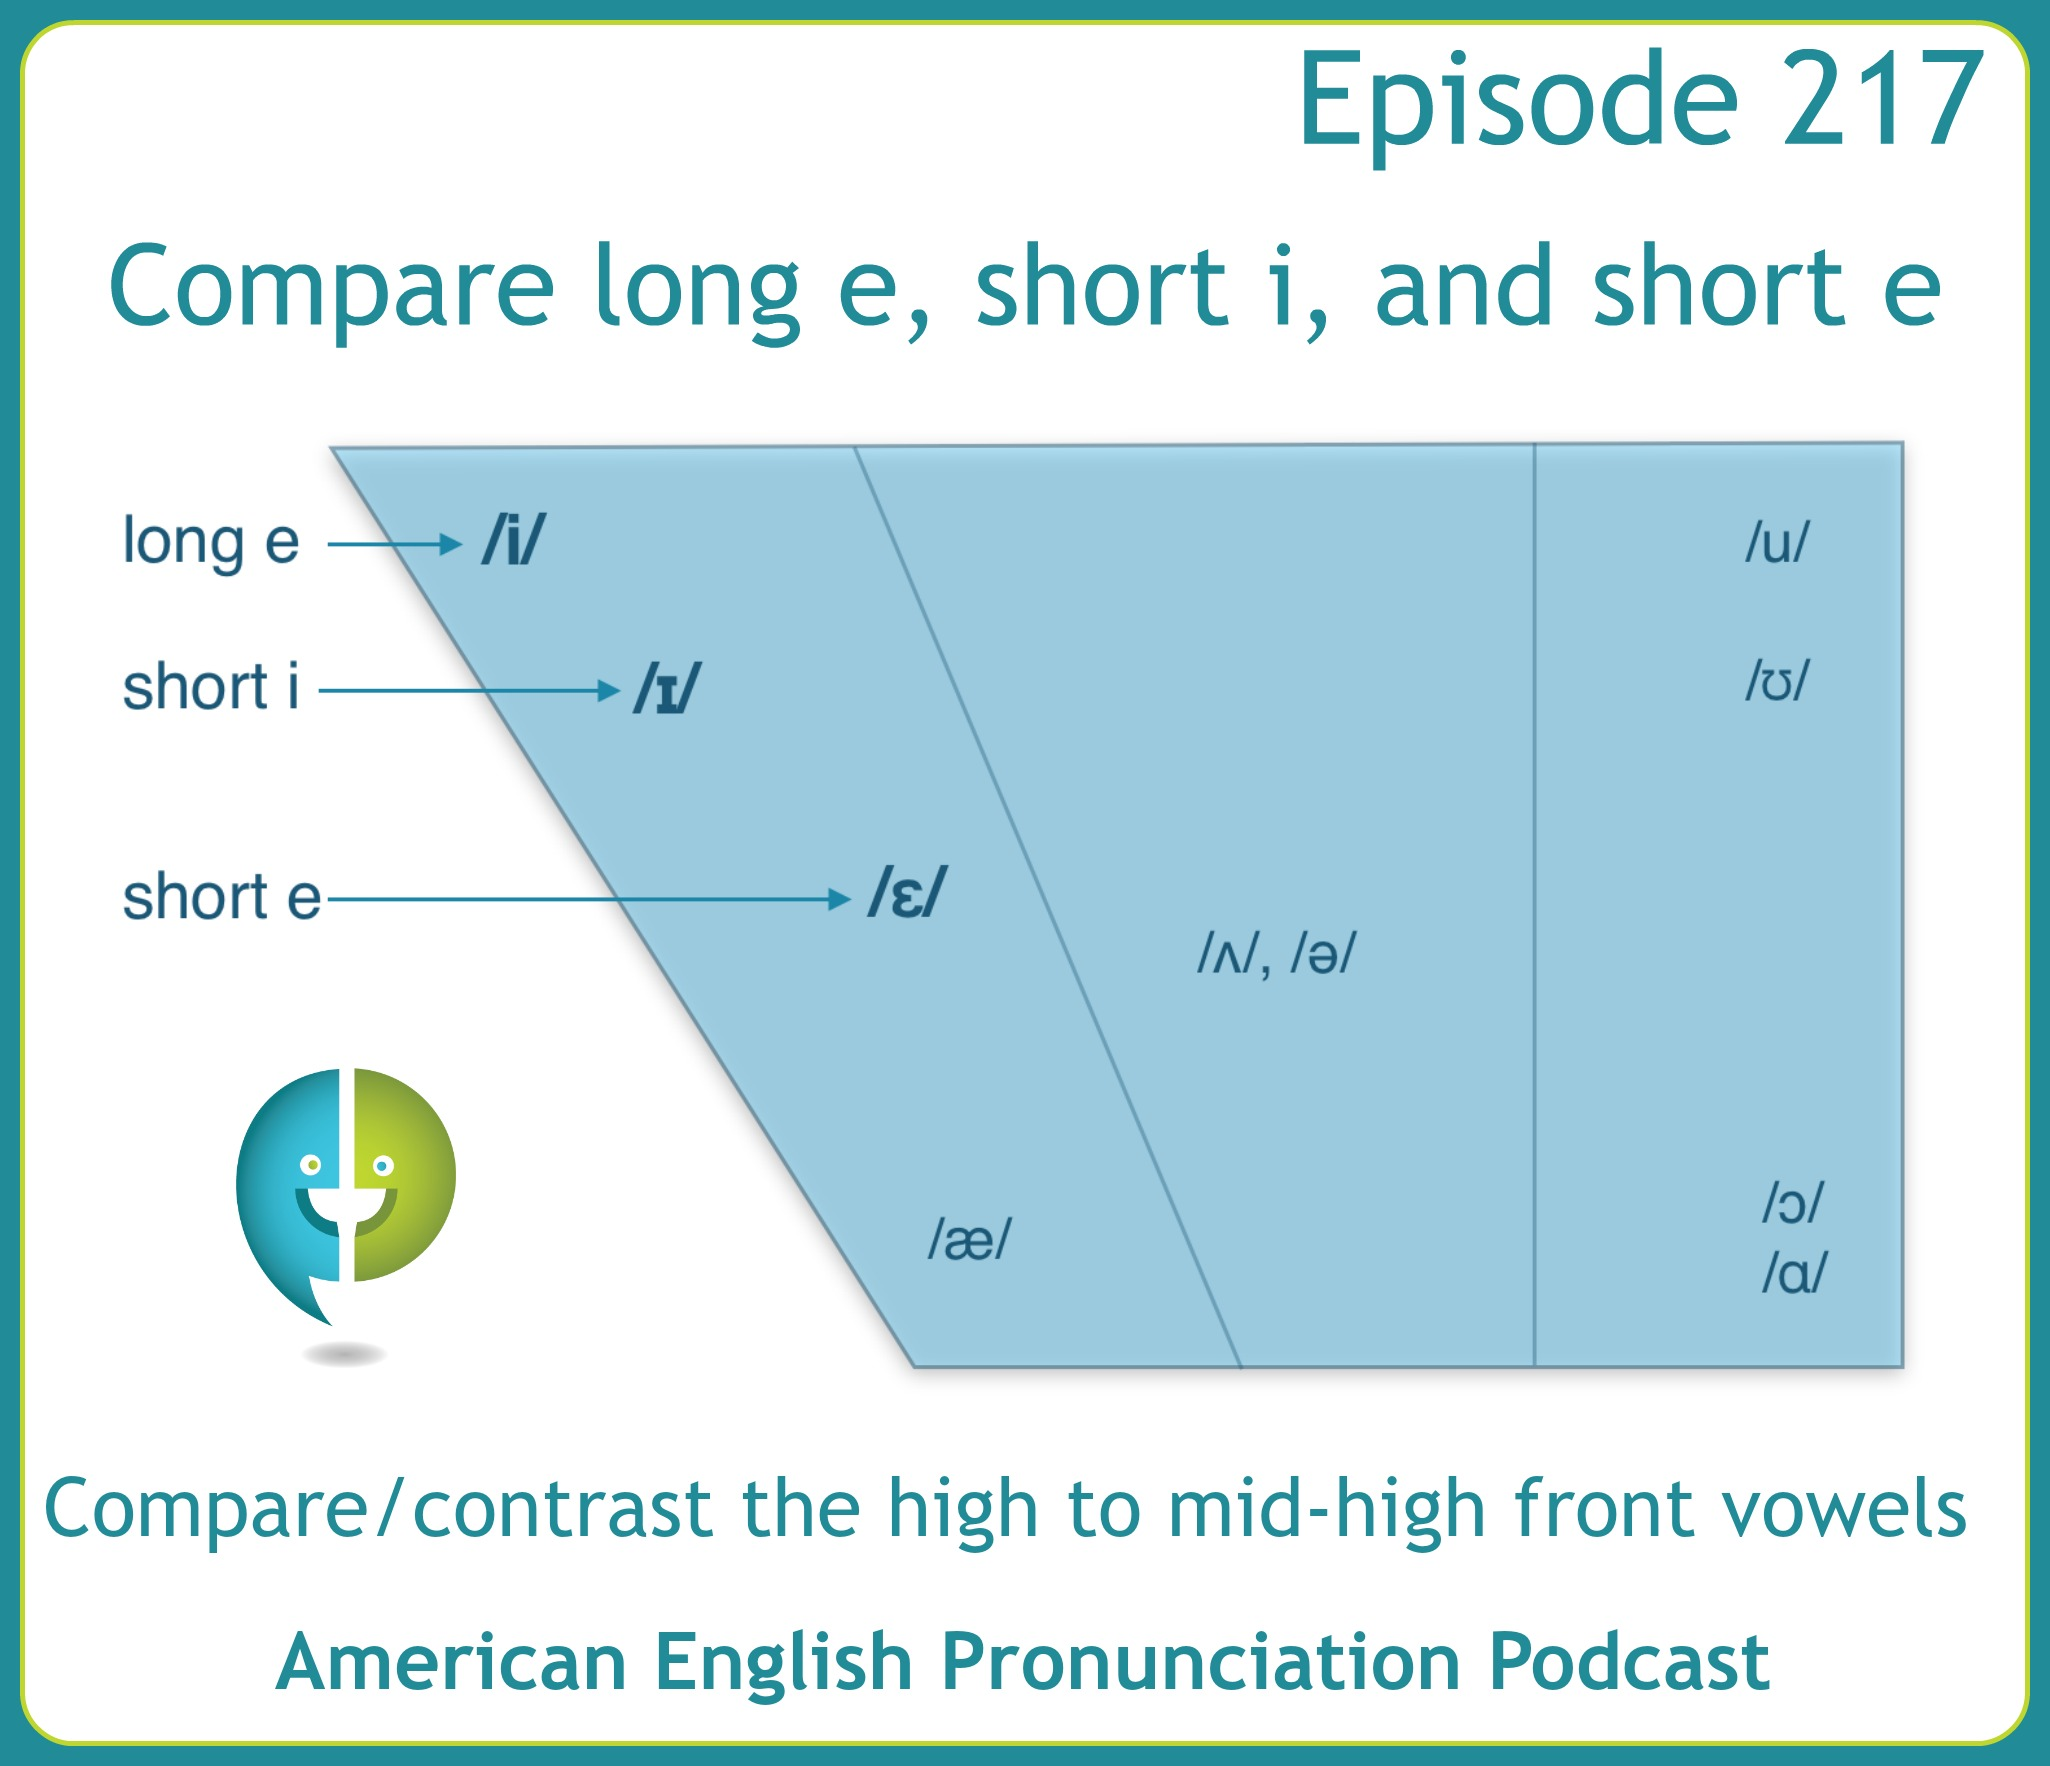 Practice pronouncing the mid-high to high front vowels in American English: Long e, short i, and short e